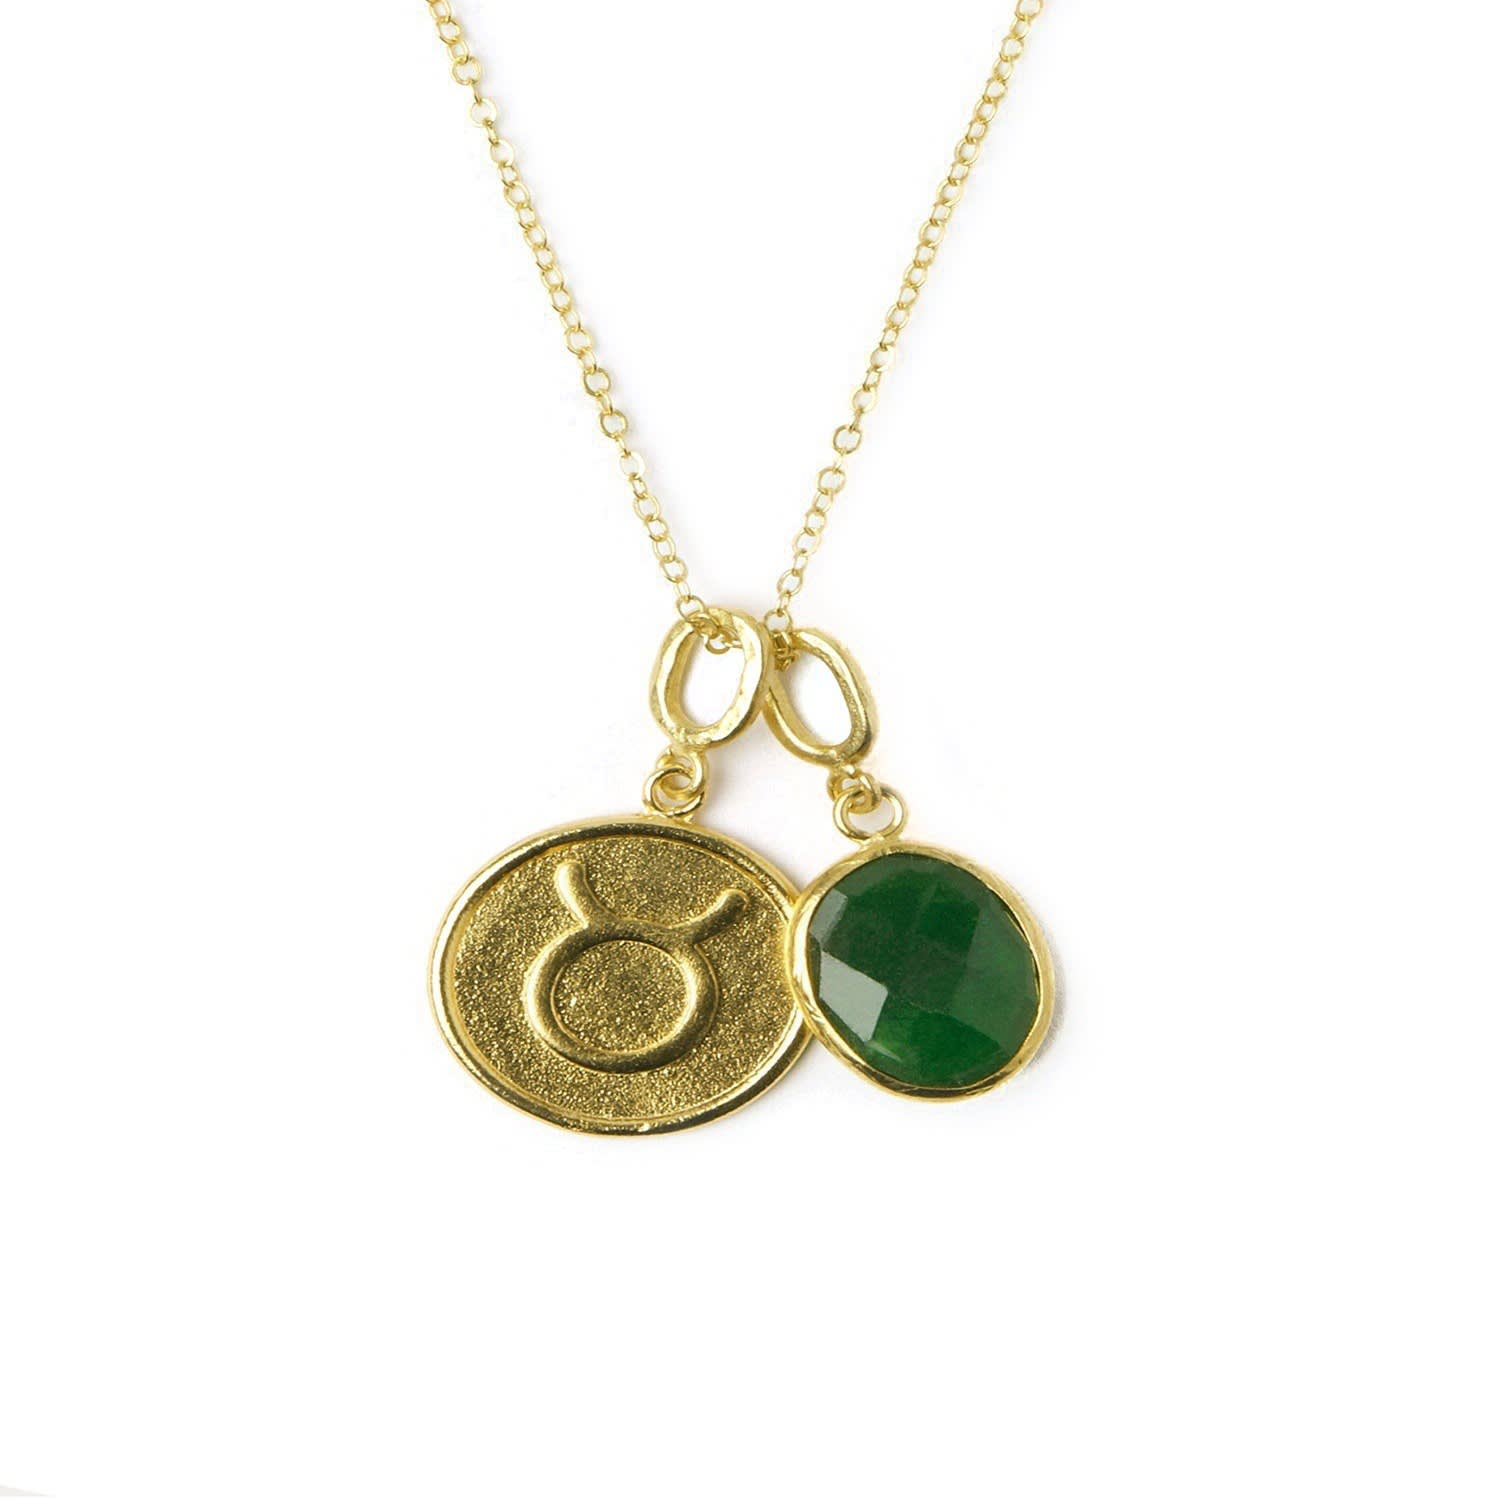 Taurus Zodiac Necklace With Emerald Charm Ottoman Hands Wolf Badger